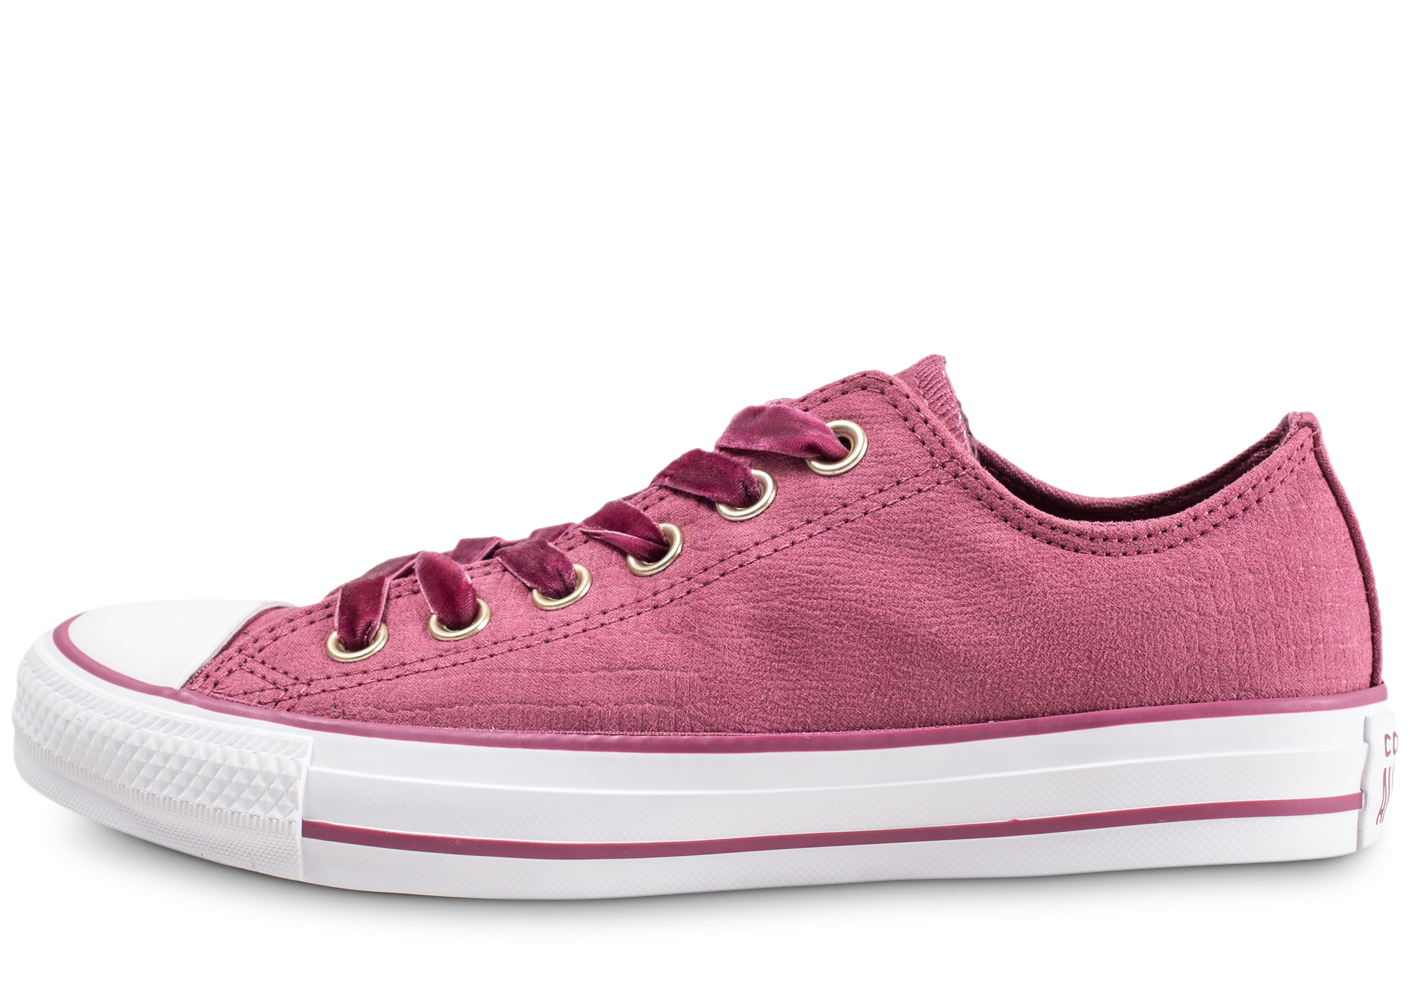 converse all star femme bordeau